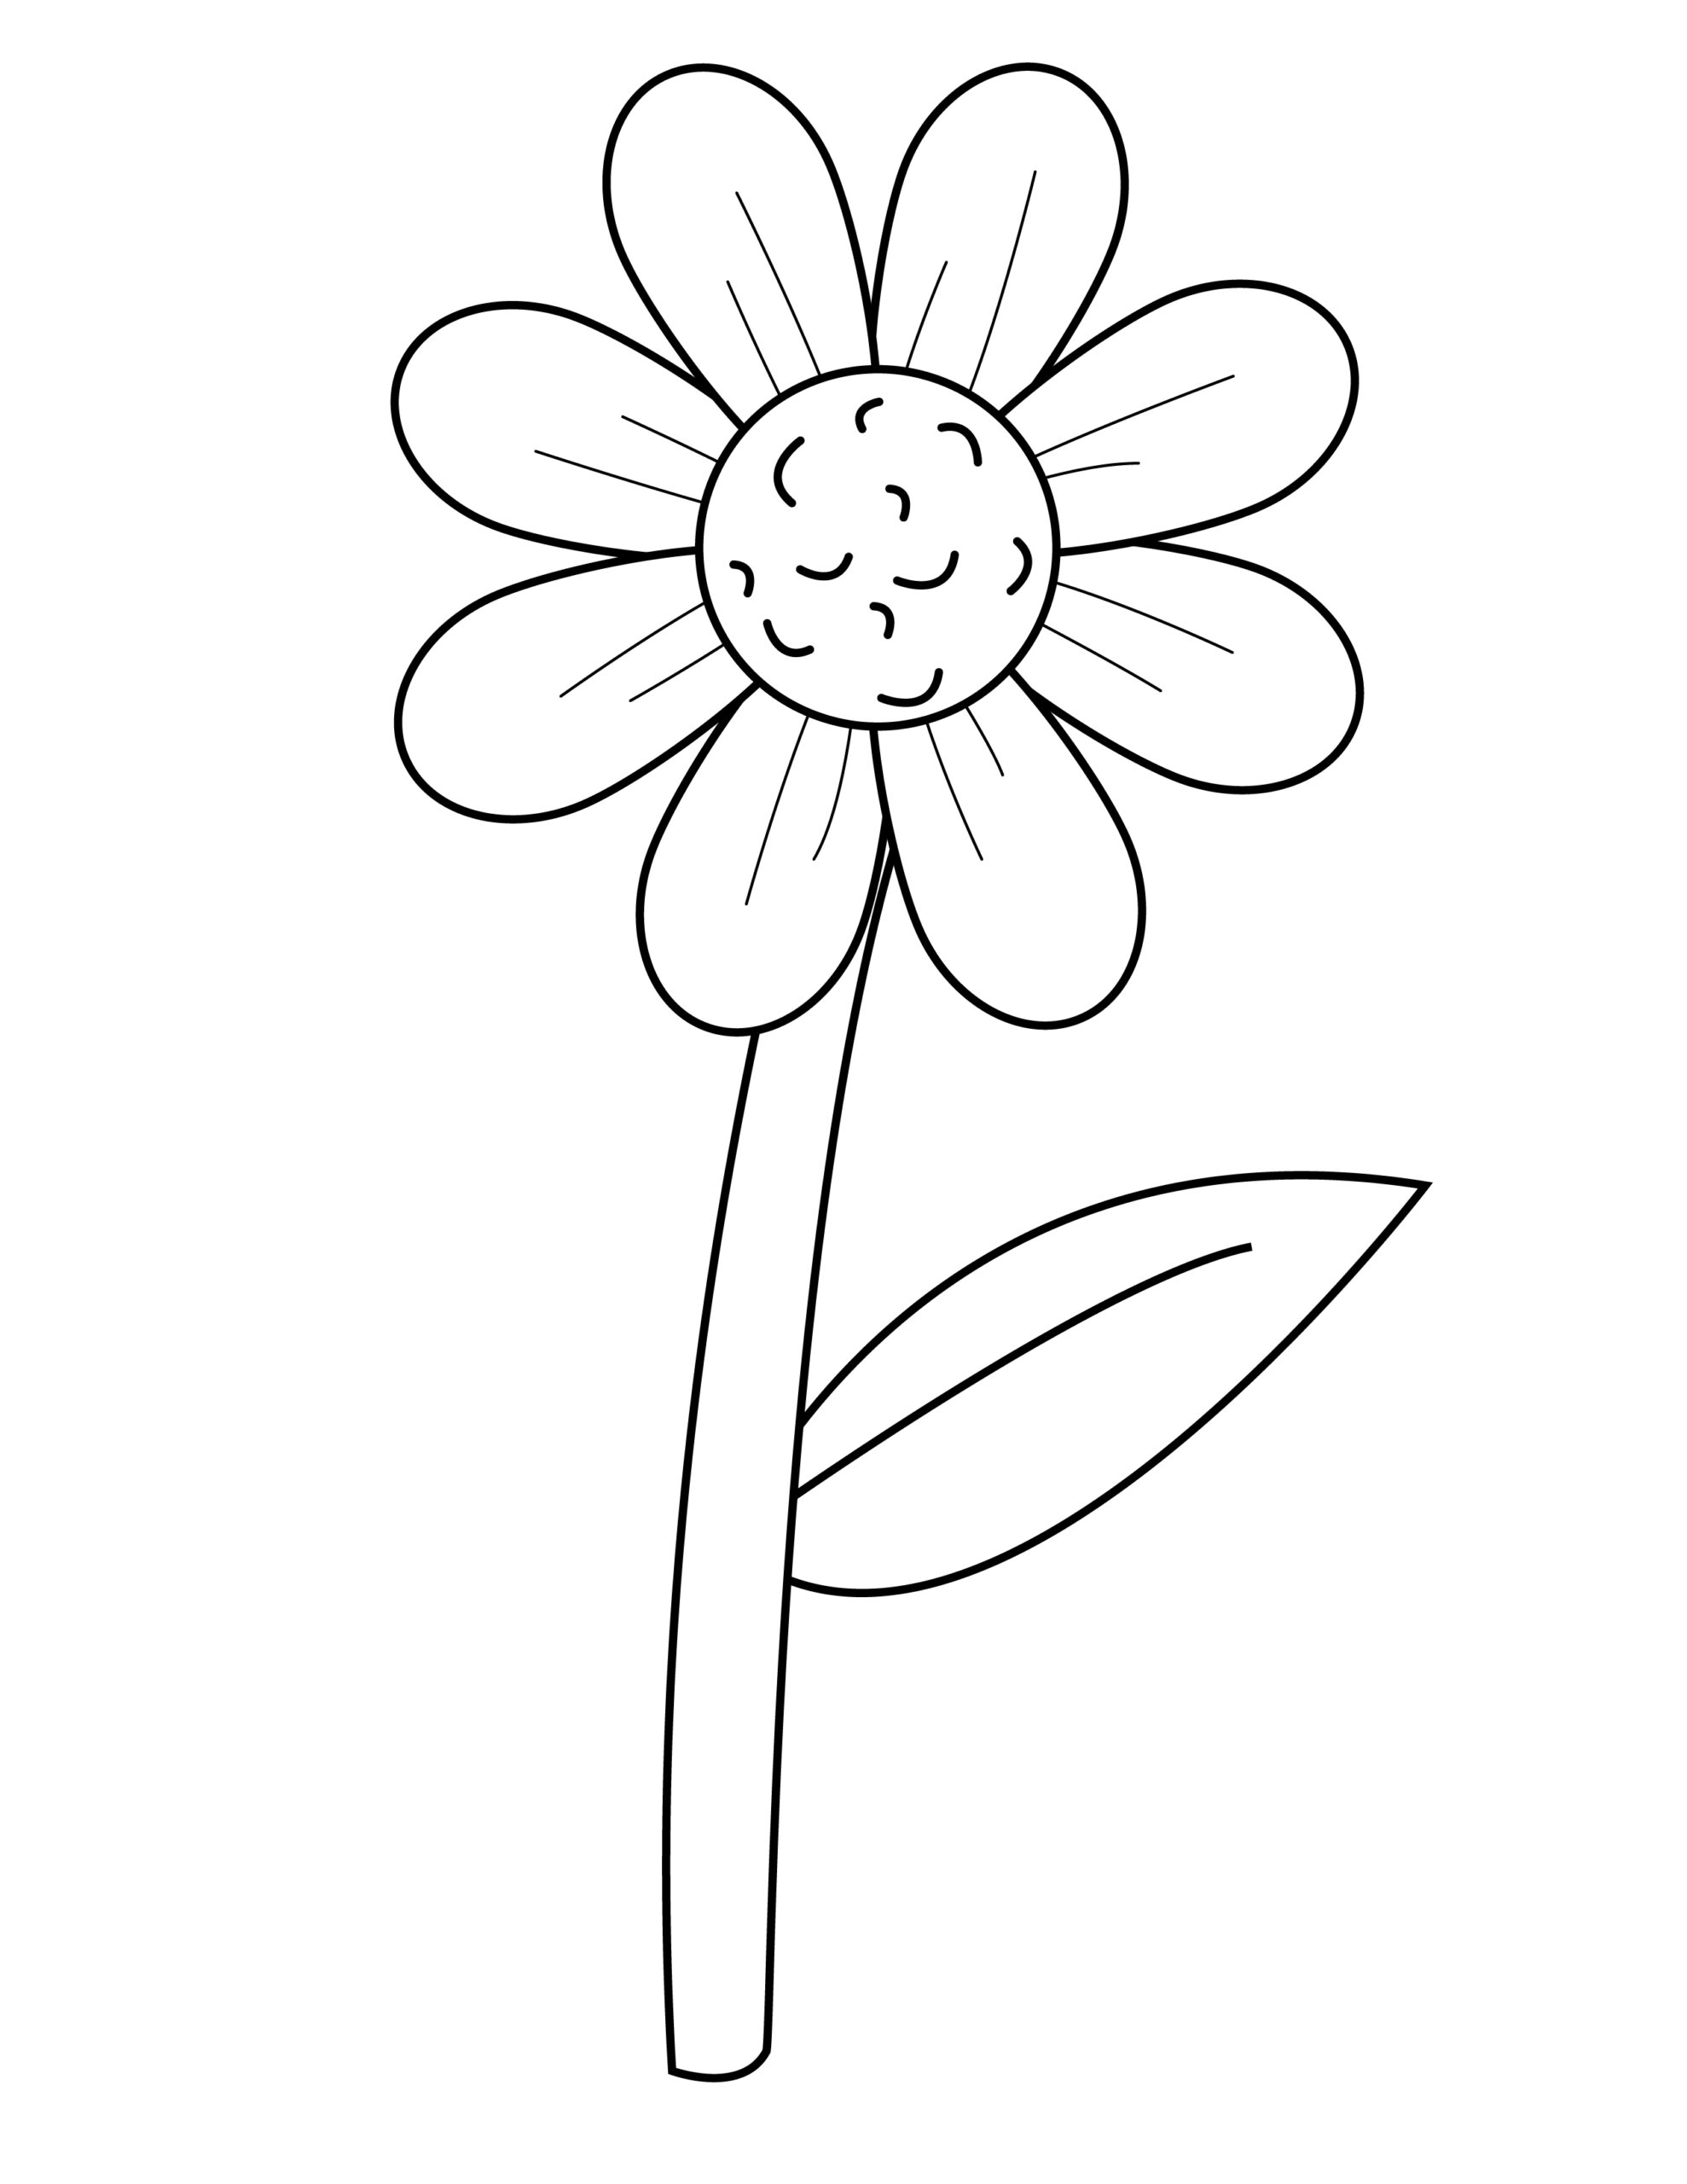 Printable daisy template for summer template crafts for kids, preschoolers and toddlers